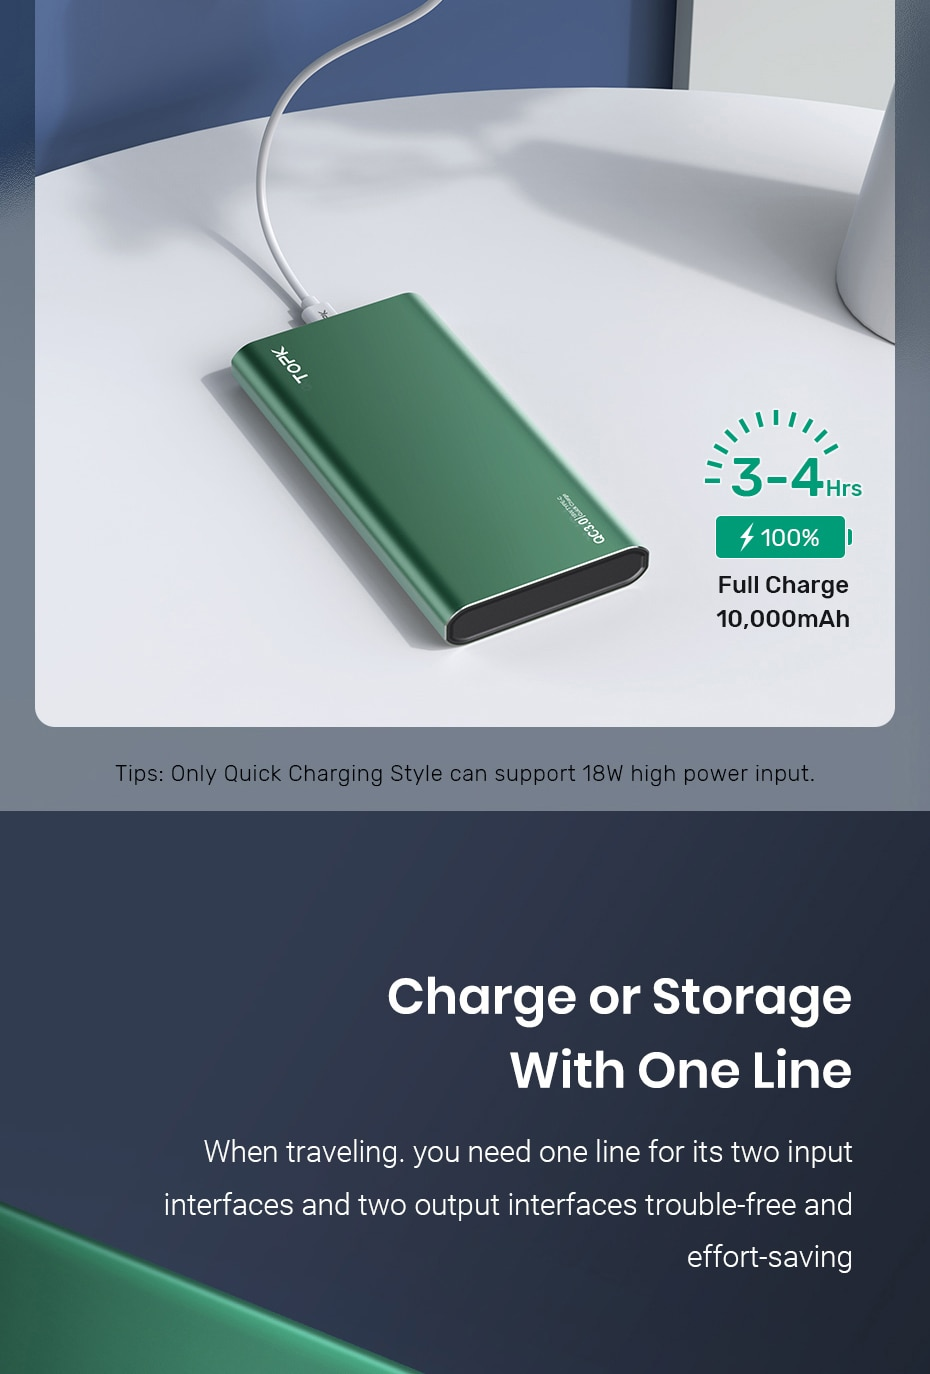 Hd0030bf004c942e3b9717b97397a6cde8 - TOPK I1006P Power Bank 10000mAh Portable Charger LED External Battery PowerBank PD Two-way Fast Charging PoverBank for Xiaomi mi